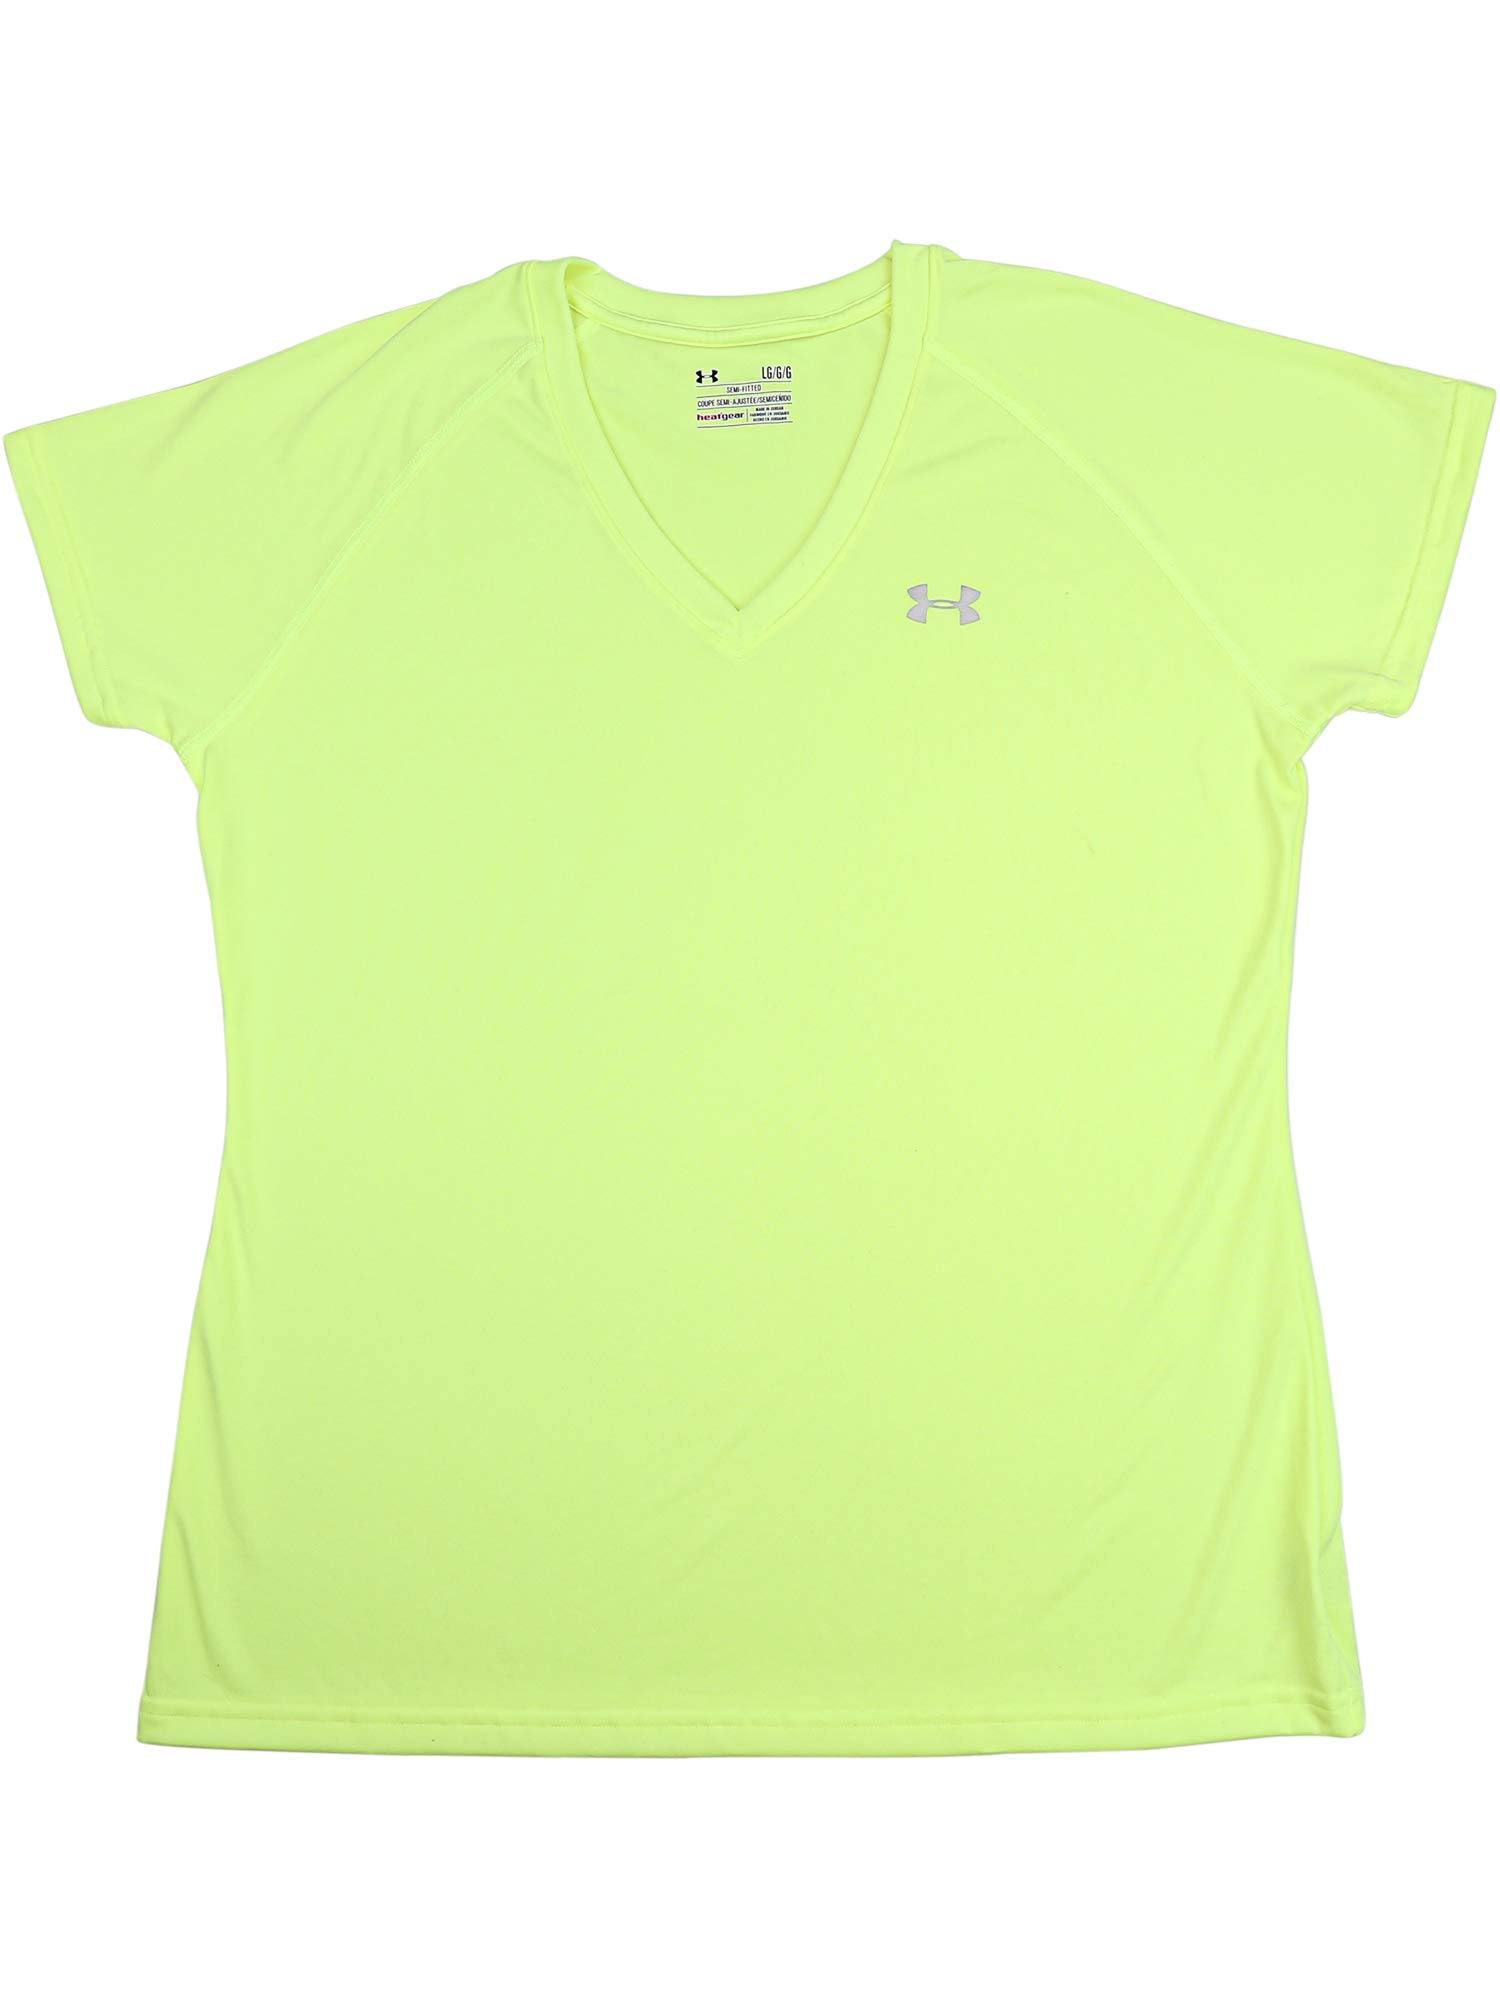 Under Armour Women's Taxi Tech V-Neck Jersey Short Sleeve Soccer - XS by Under Armour (Image #1)